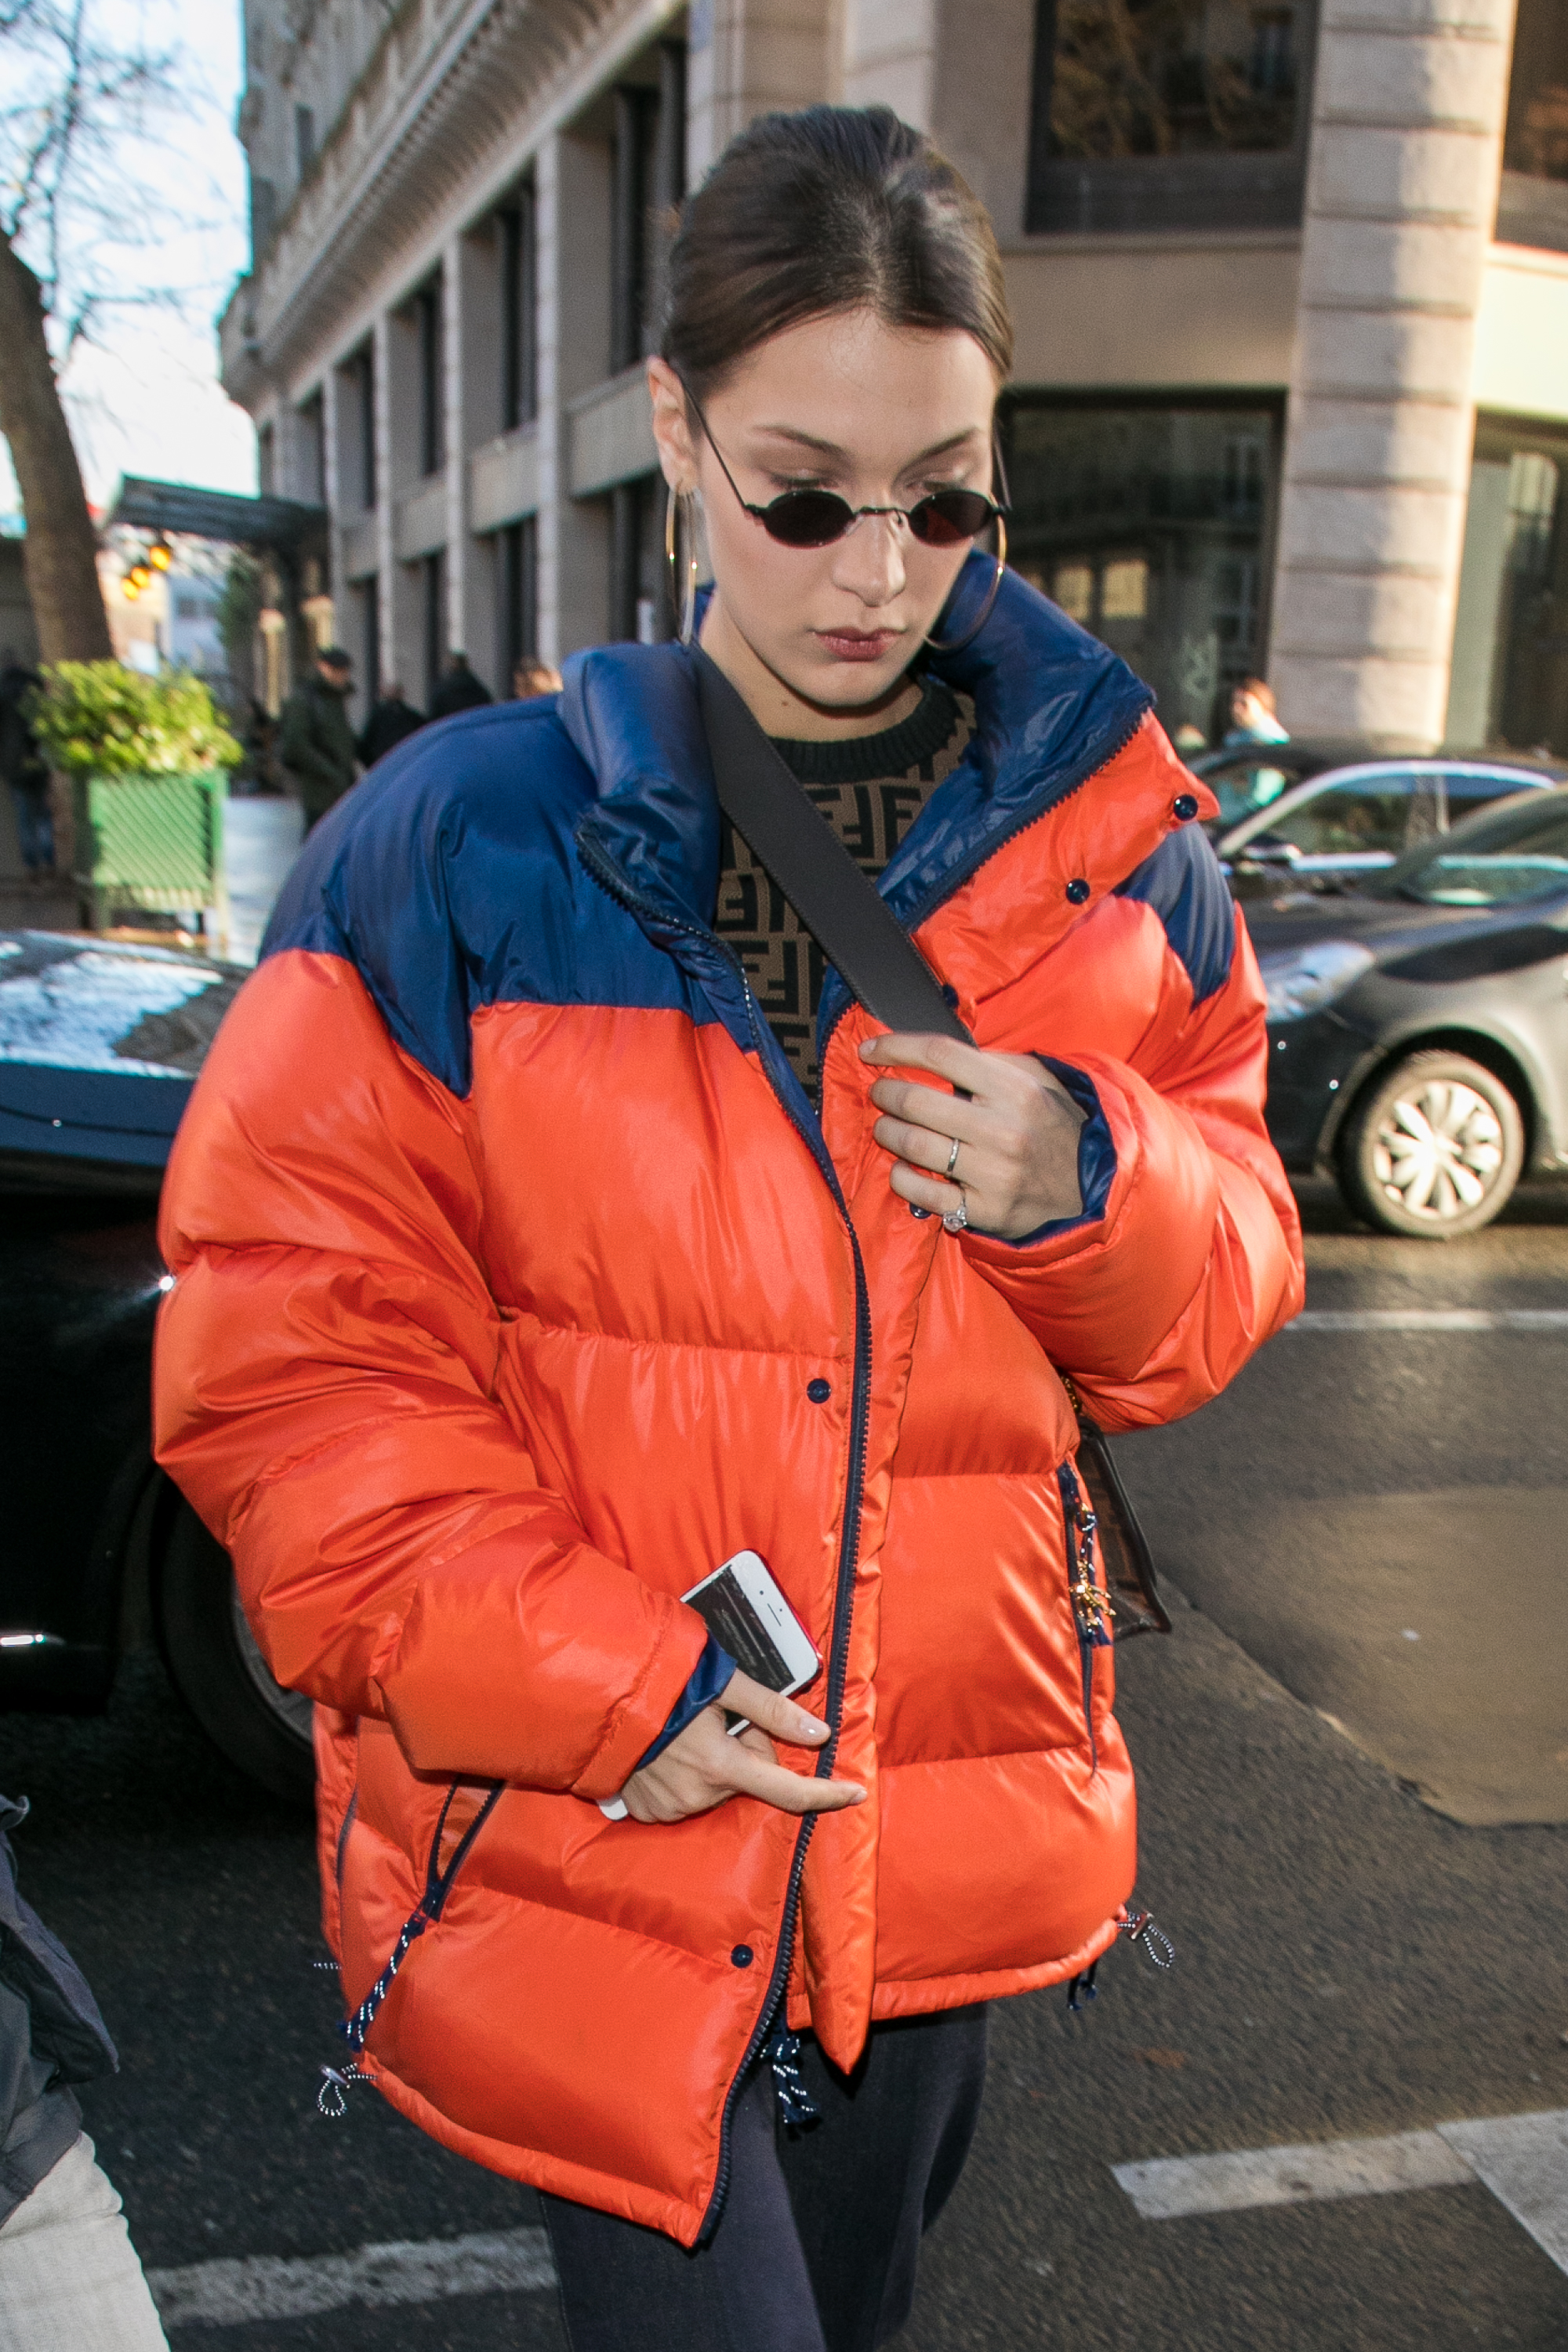 """<p>After years of being shunned for their chunky silhouettes and distinctly non-chic vibe, puffer jackets have undergone a major style renaissance</p> <p> Balenciaga, Calvin Klein and Versace have all sent the over-sized puffer down the runways and it's been  given the <a href=""""https://style.nine.com.au/2018/06/29/13/53/bella-hadid-topless-shoot"""" target=""""_blank"""" title=""""supermodel tick of approval with the likes of Bella Hadid"""" draggable=""""false"""">supermodel tick of approval by the likes of Bella Hadid</a>, Kendall Jenner and Adriana Lima.</p> <p> Somehow the puffer jacket has gone from being an unfortunate ski holiday necessity to a winter wardrobe must-have.</p> <p> Like the sound of that? Check out our top puffers made just for you.</p>"""